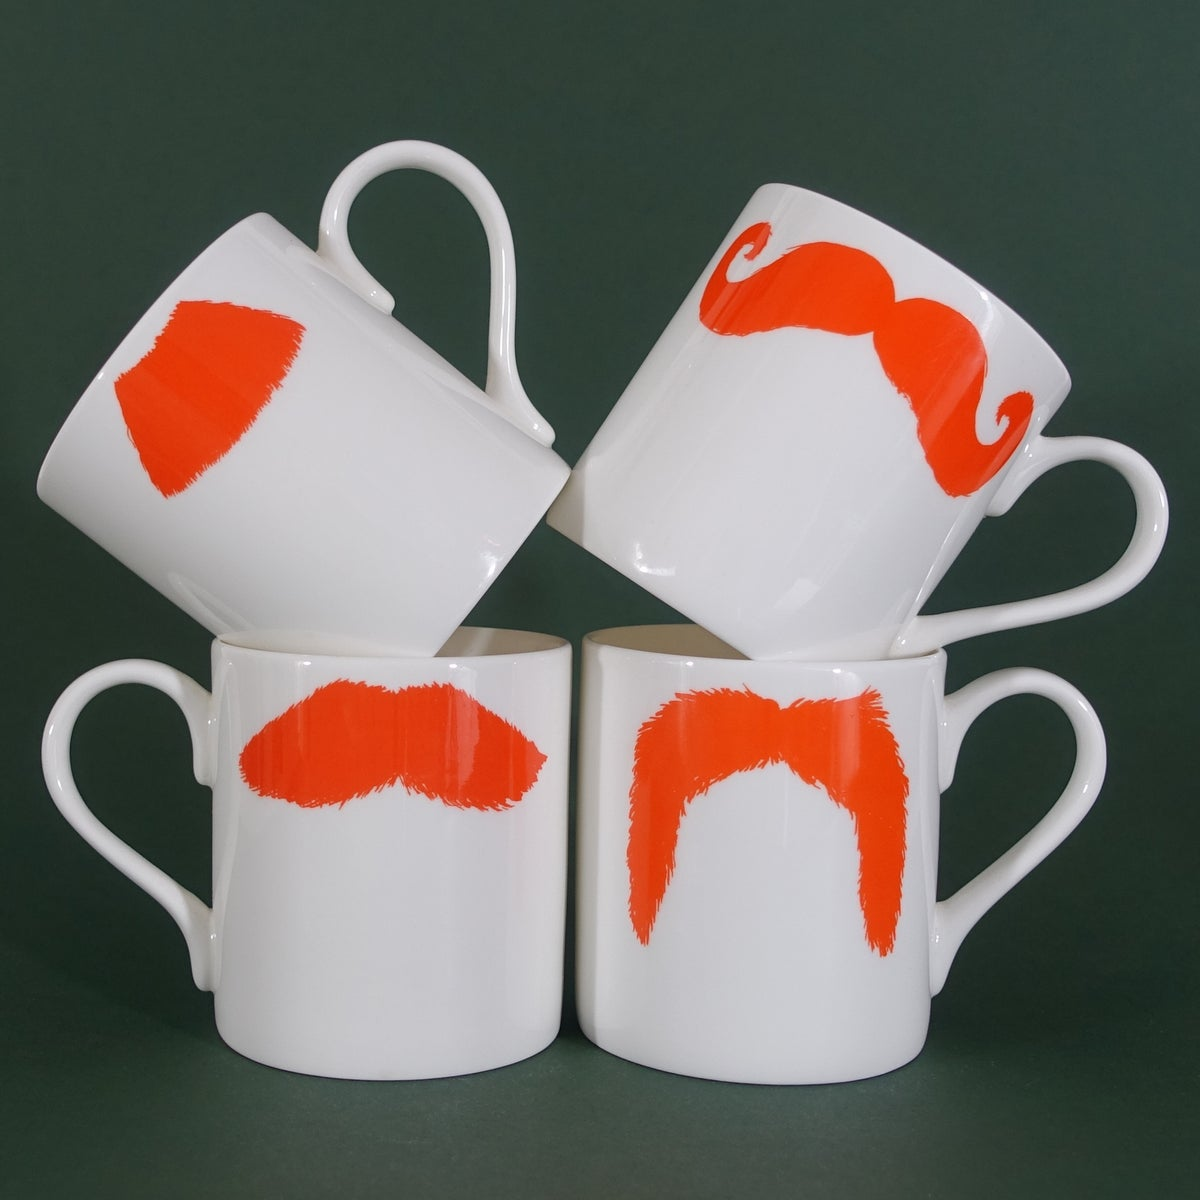 Image of Original Ginger Moustache Mug - Set of Four